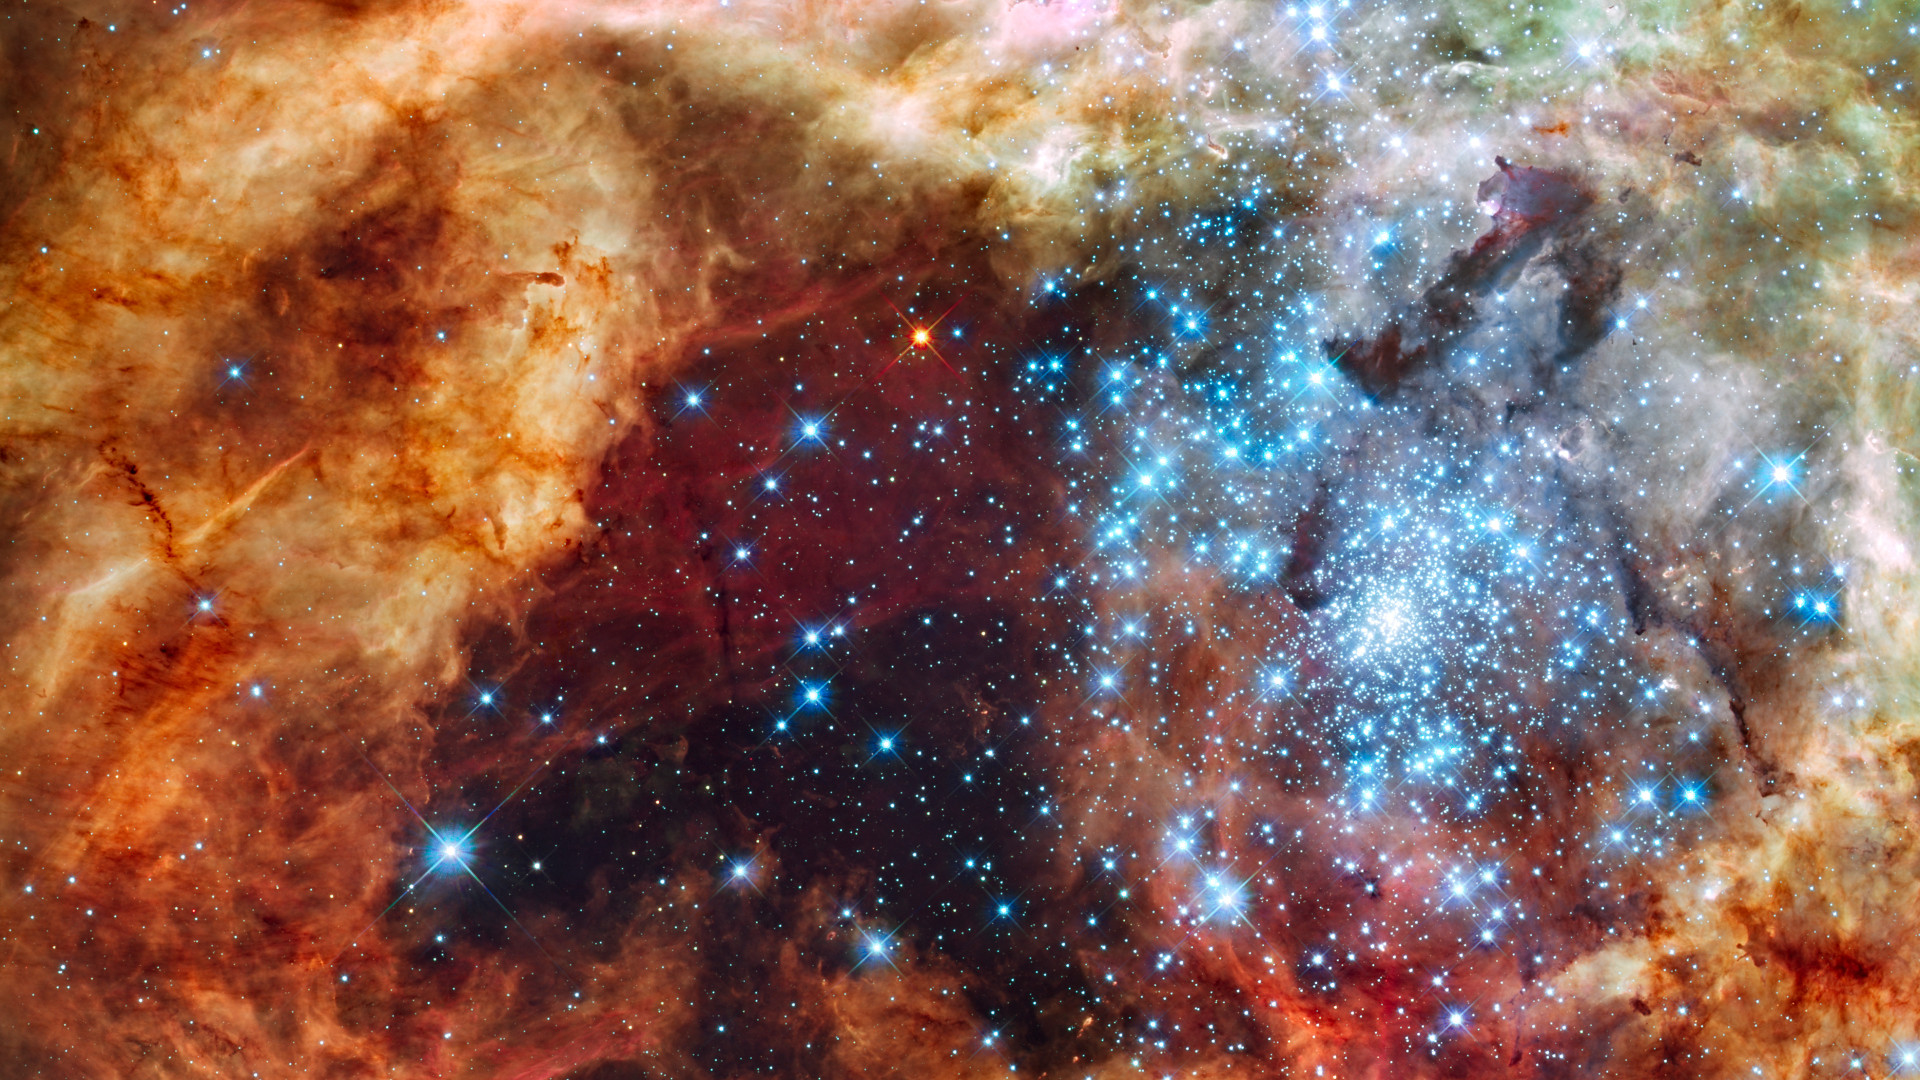 Hubble Images Super High Resolution Related Keyword...